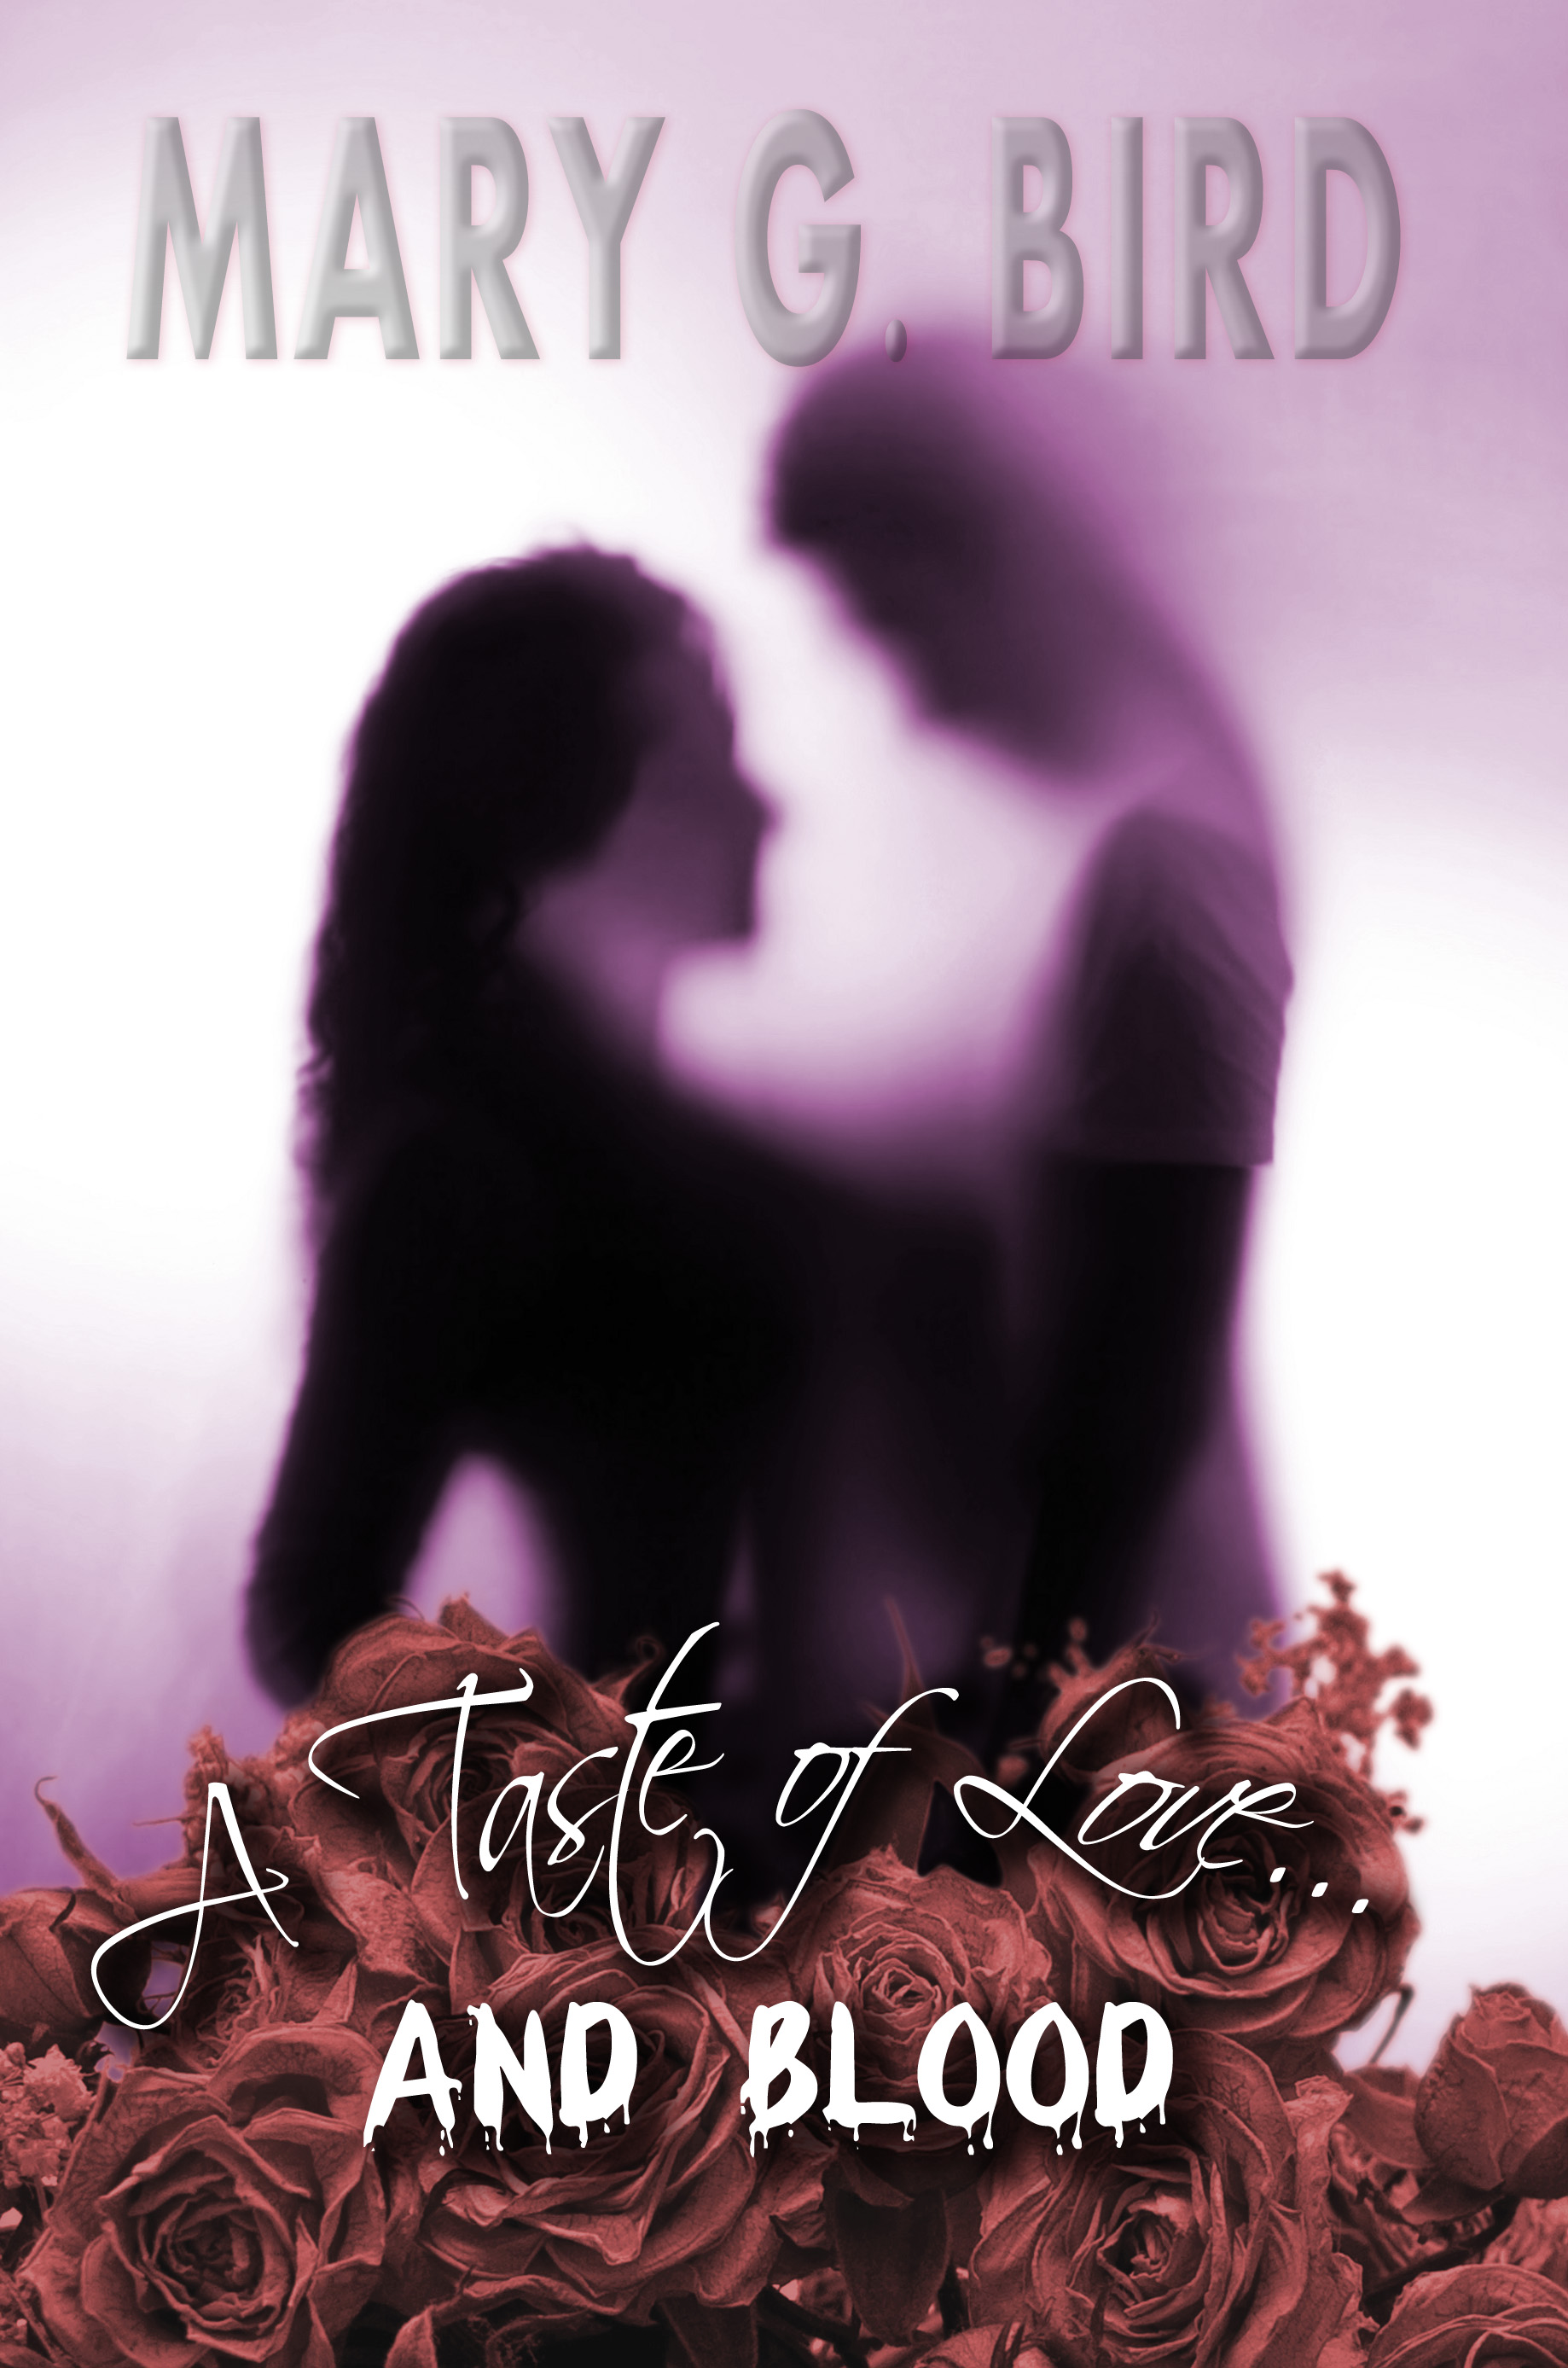 Mary G. Bird - A Taste of Love... And Blood